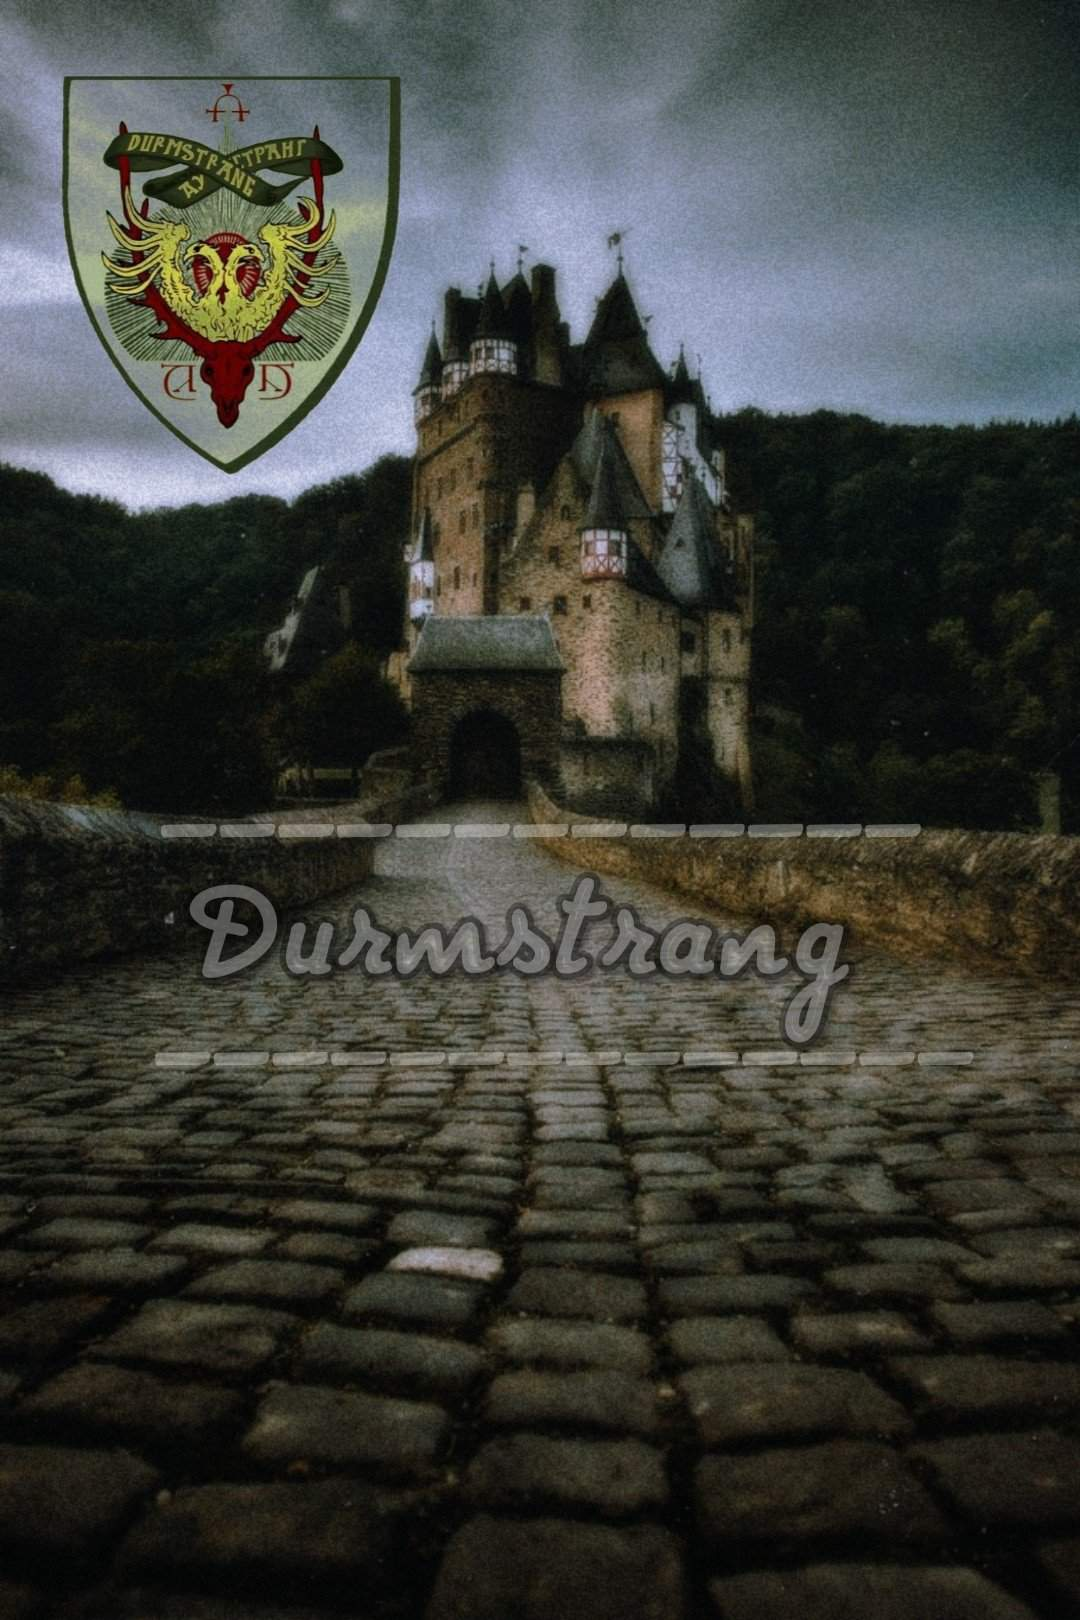 Durmstrang Institute Wiki Harry Potter Amino Durmstrang institute is one of the three largest wizarding schools in europe (the other two being hogwarts and beauxbatons). amino apps